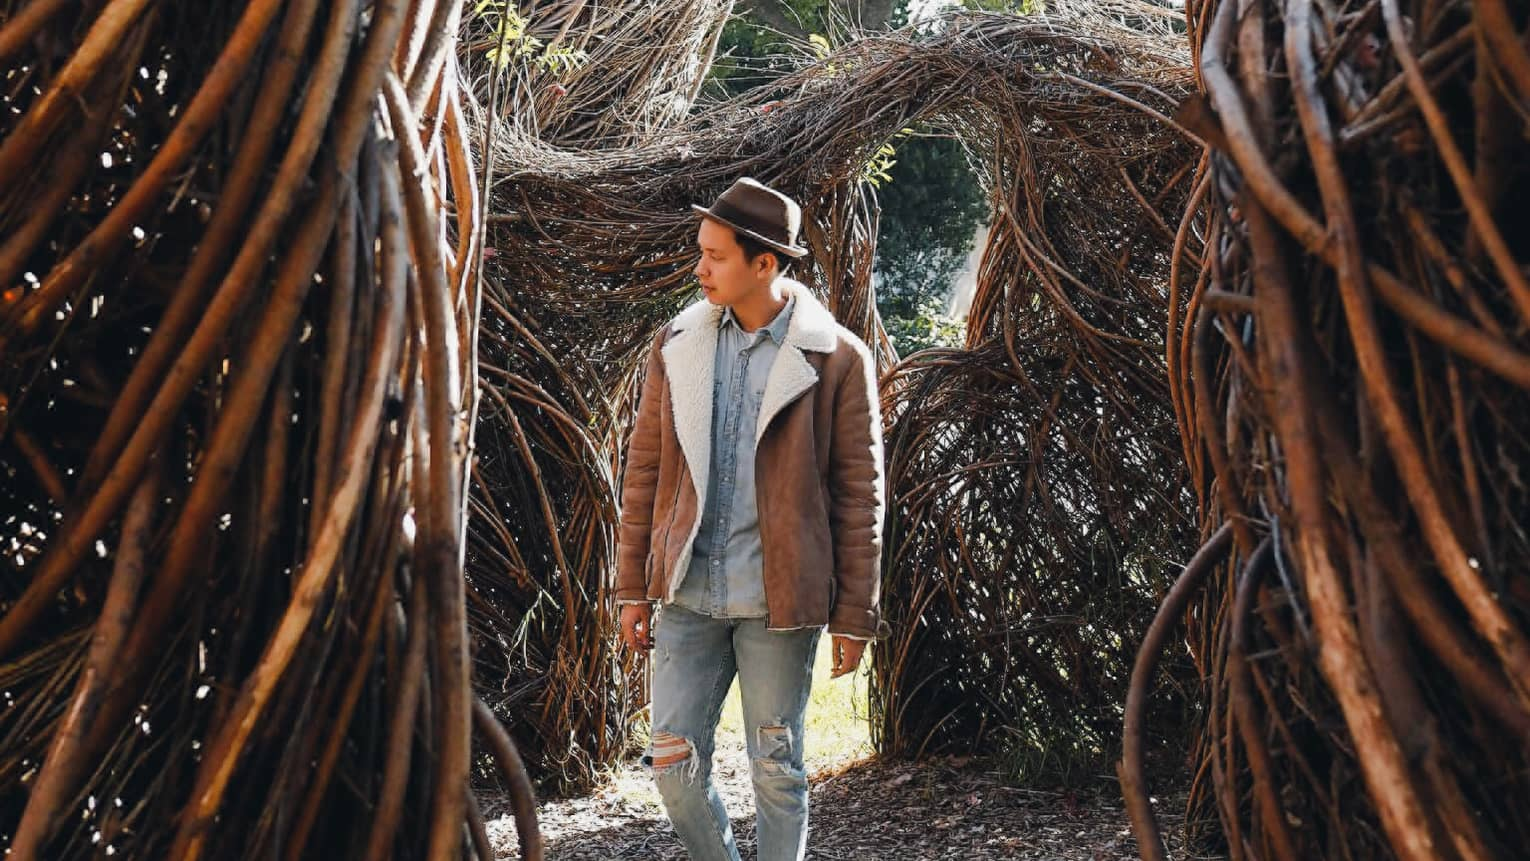 Man in shearling coat, fedora hat walks through twisted branches, trees